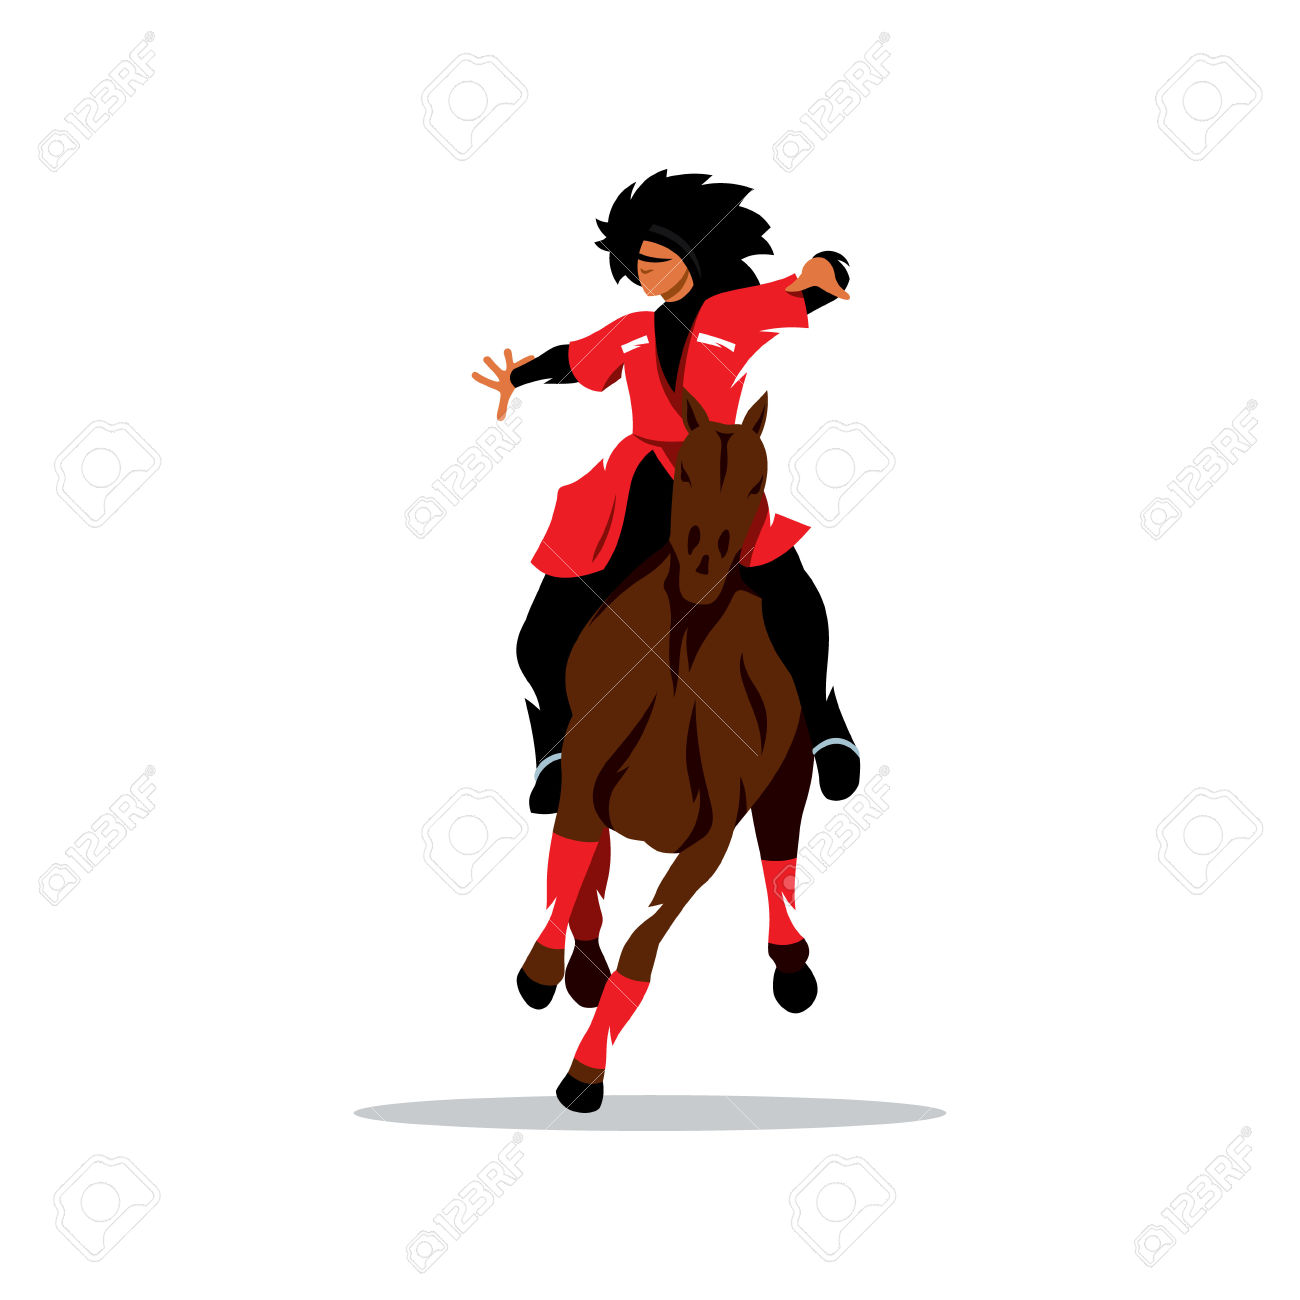 Man In Black Fur Hat And A Red Dress On A Horse Waving His Arms.